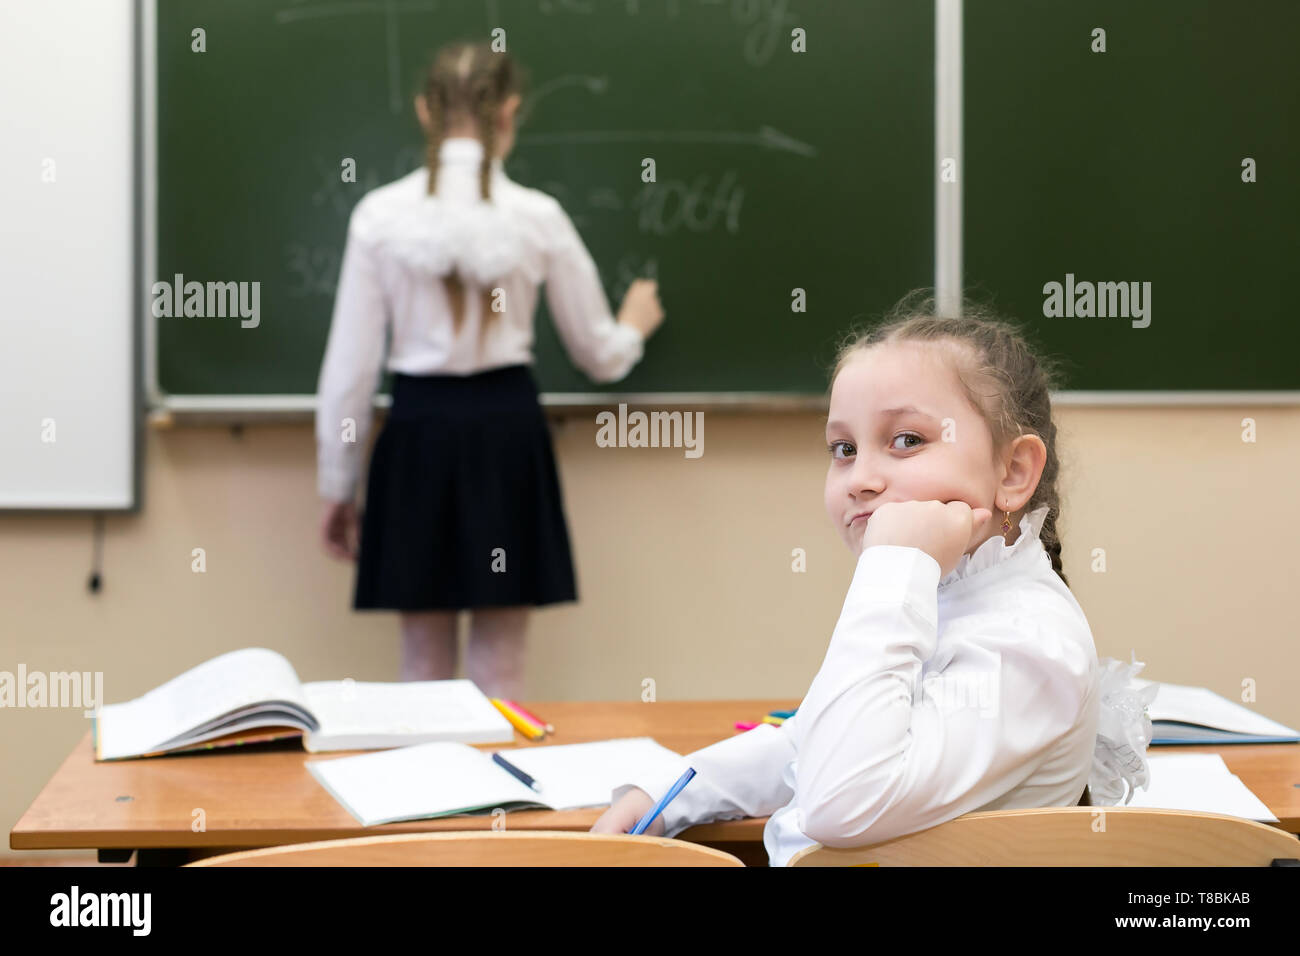 schoolgirl girl looks into the camera while her friend, a classmate, answers the teacher at the blackboard. - Stock Image